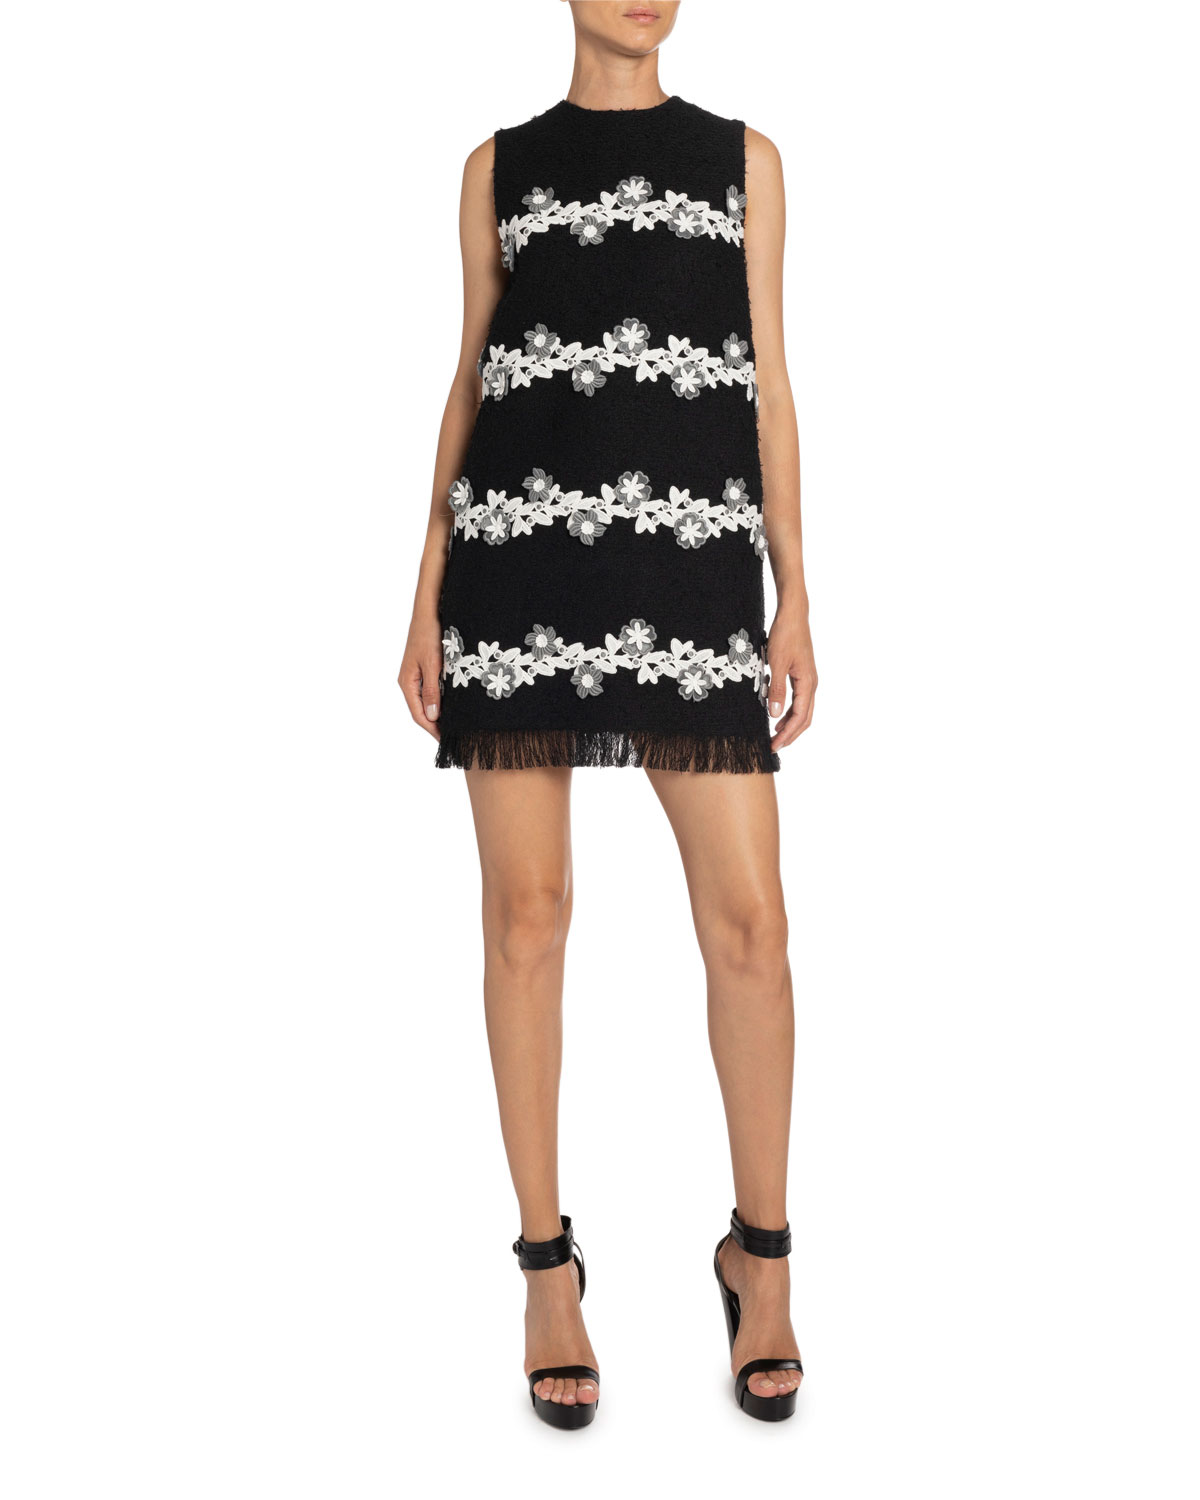 Andrew Gn Floral-Striped Tweed Shift Dress